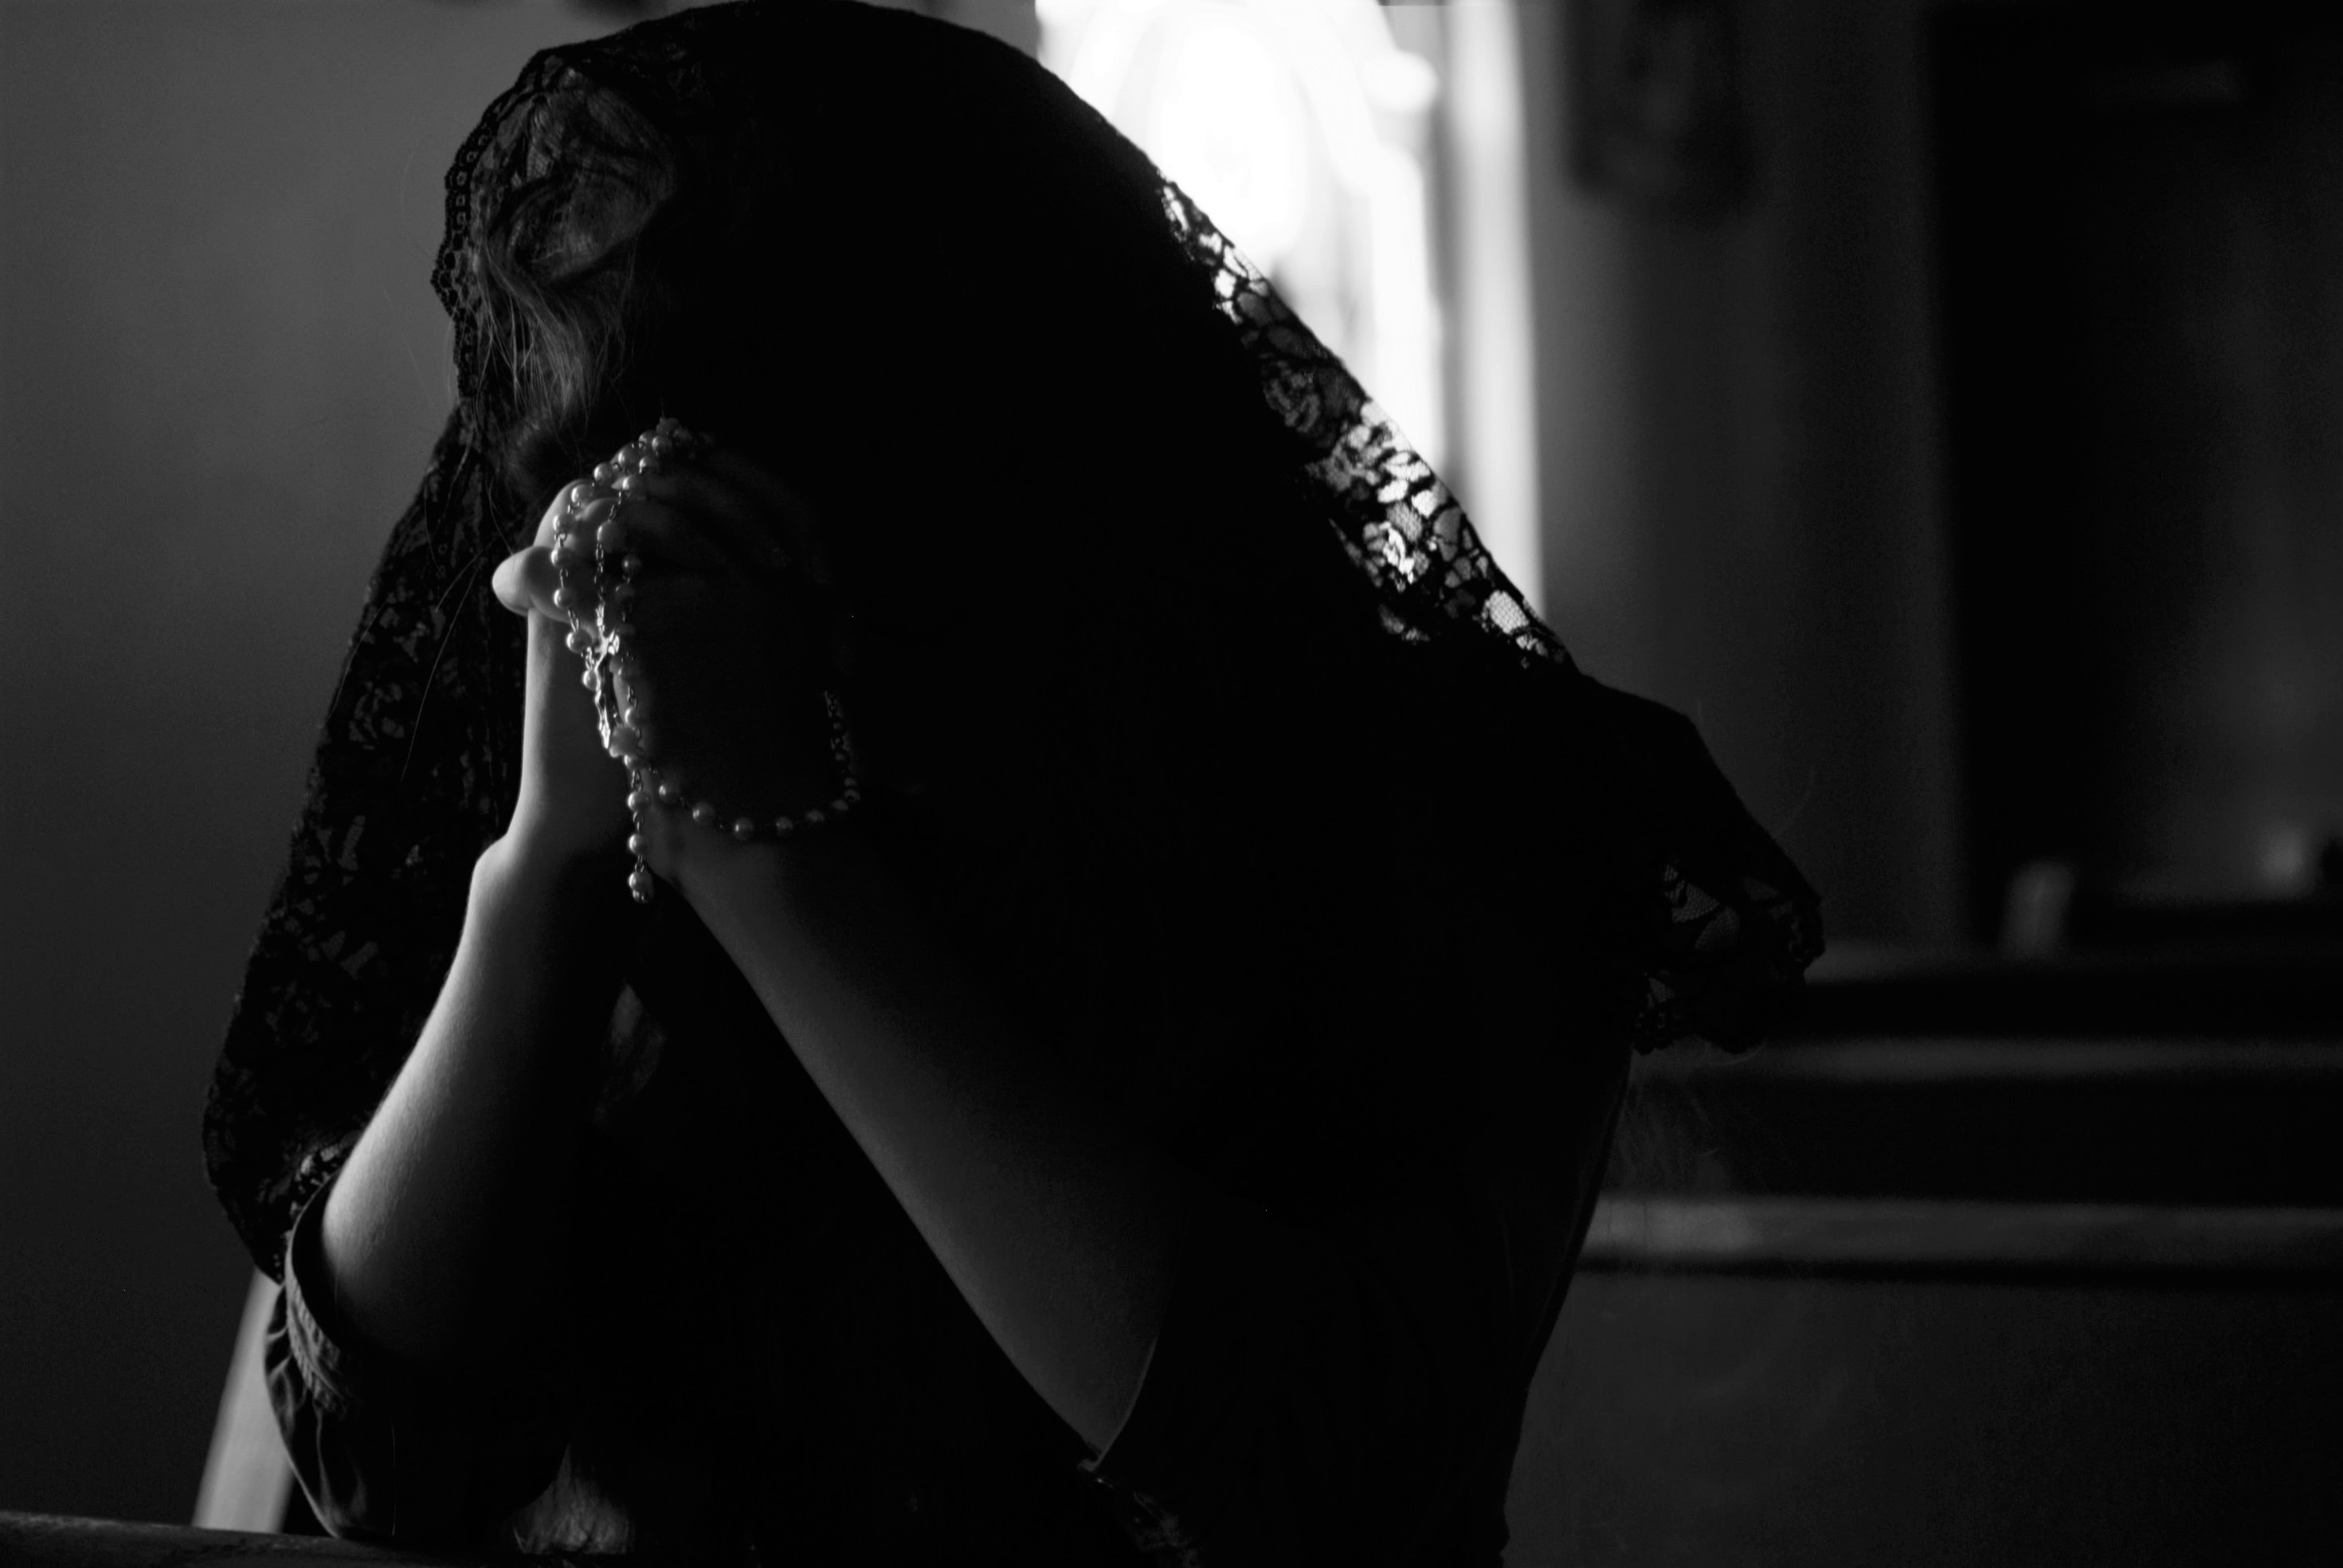 grayscale photography of woman praying while holding prayer beads